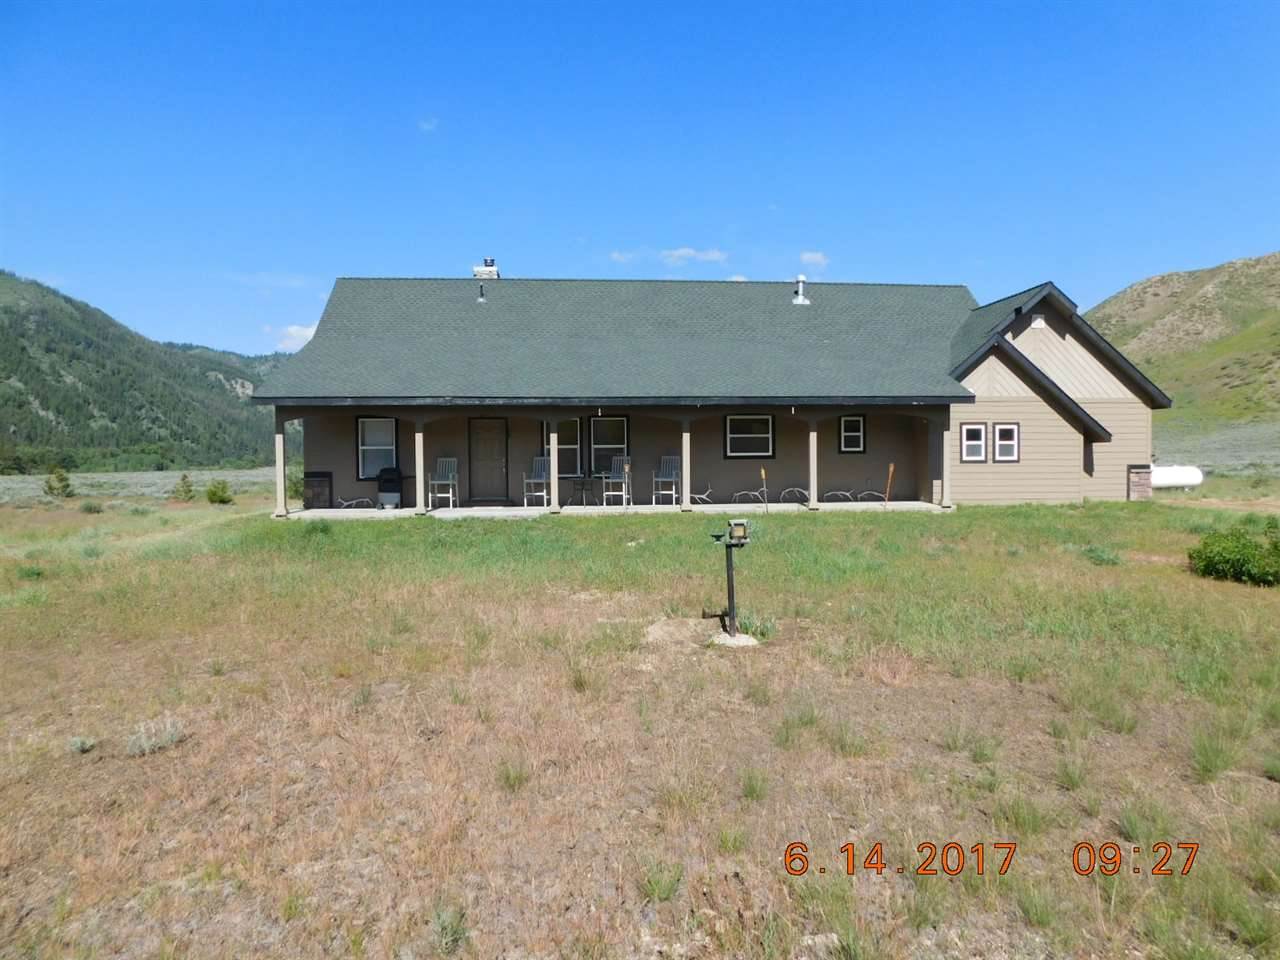 Single Family Home for Sale at 5190 E Baumgartner Rd Featherville, Idaho 83647